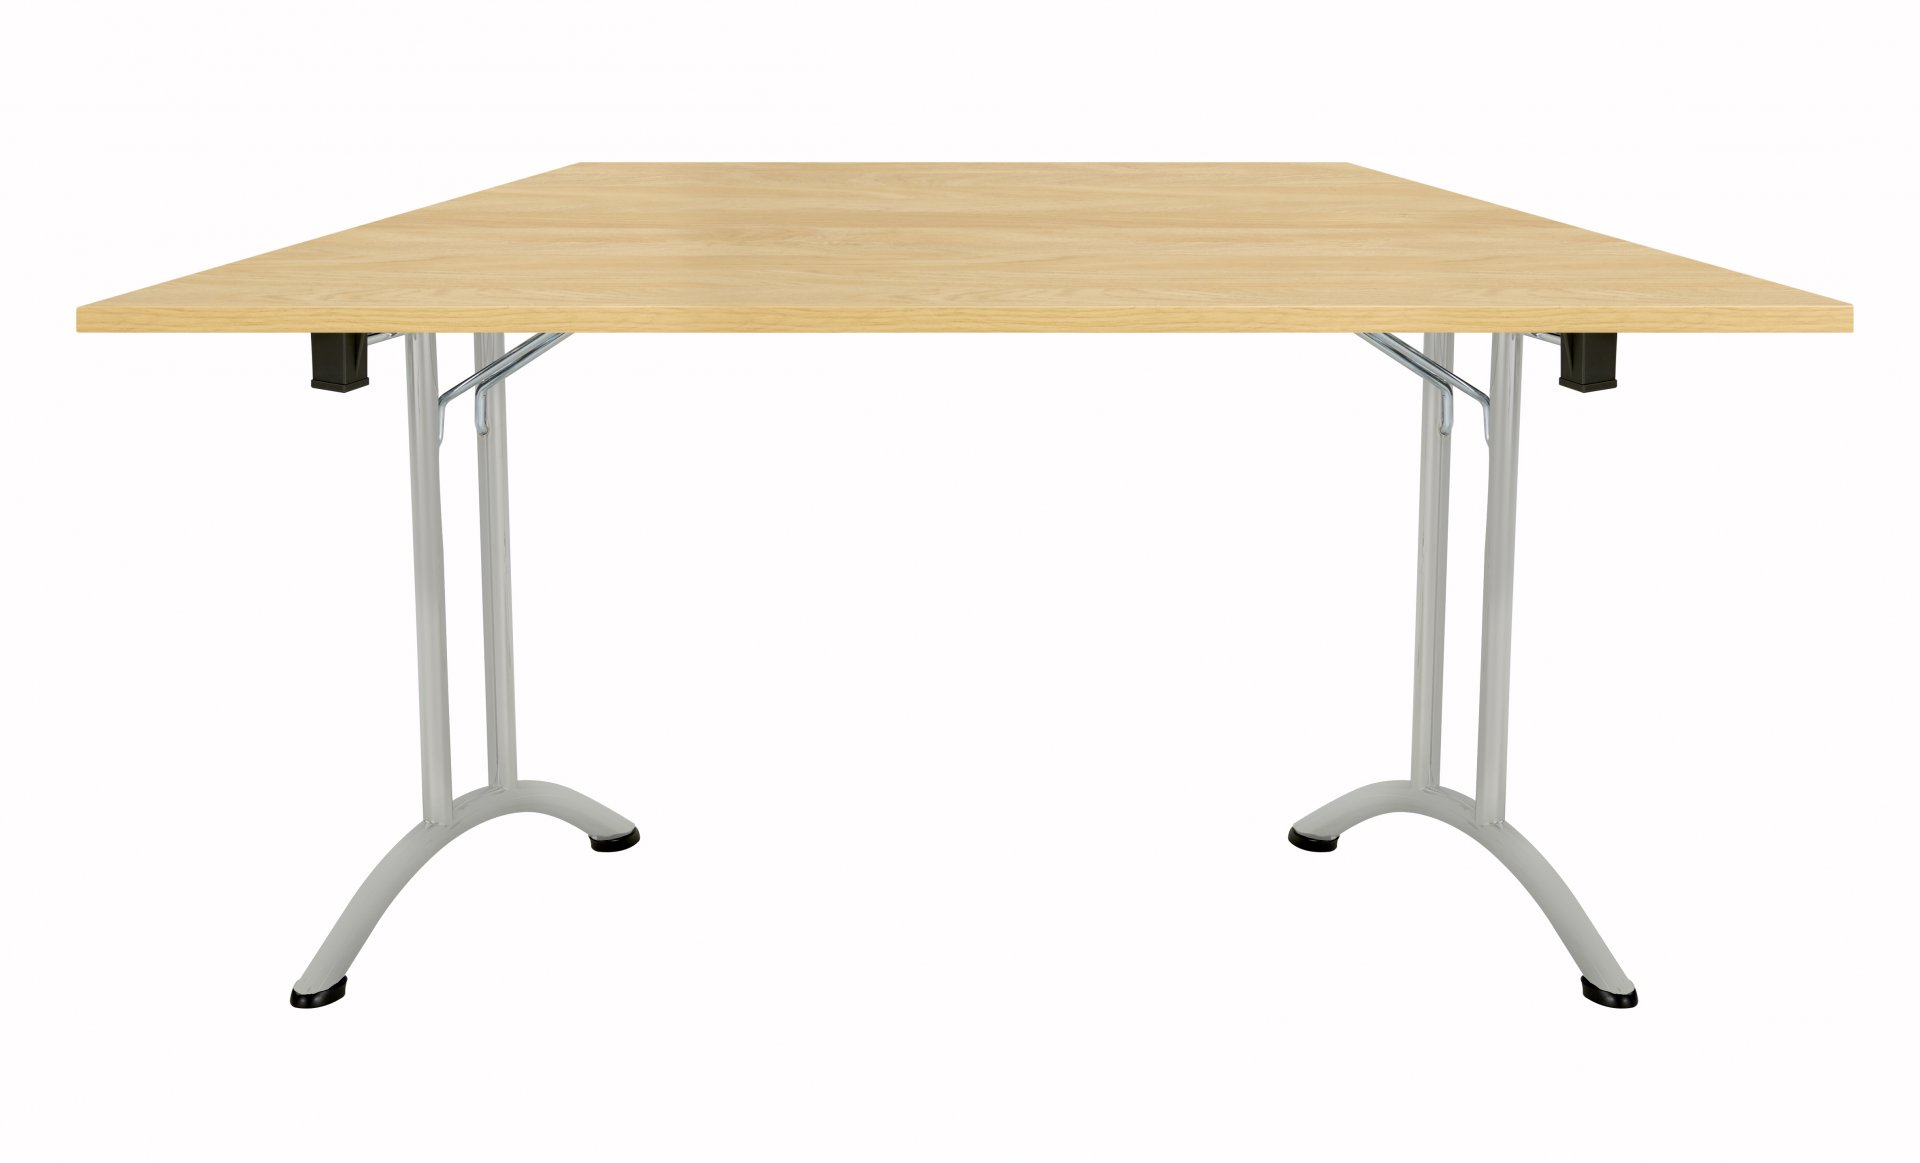 Union Trapezoidal 160 Folding Meeting Table - Nova Oak with Silver Frame